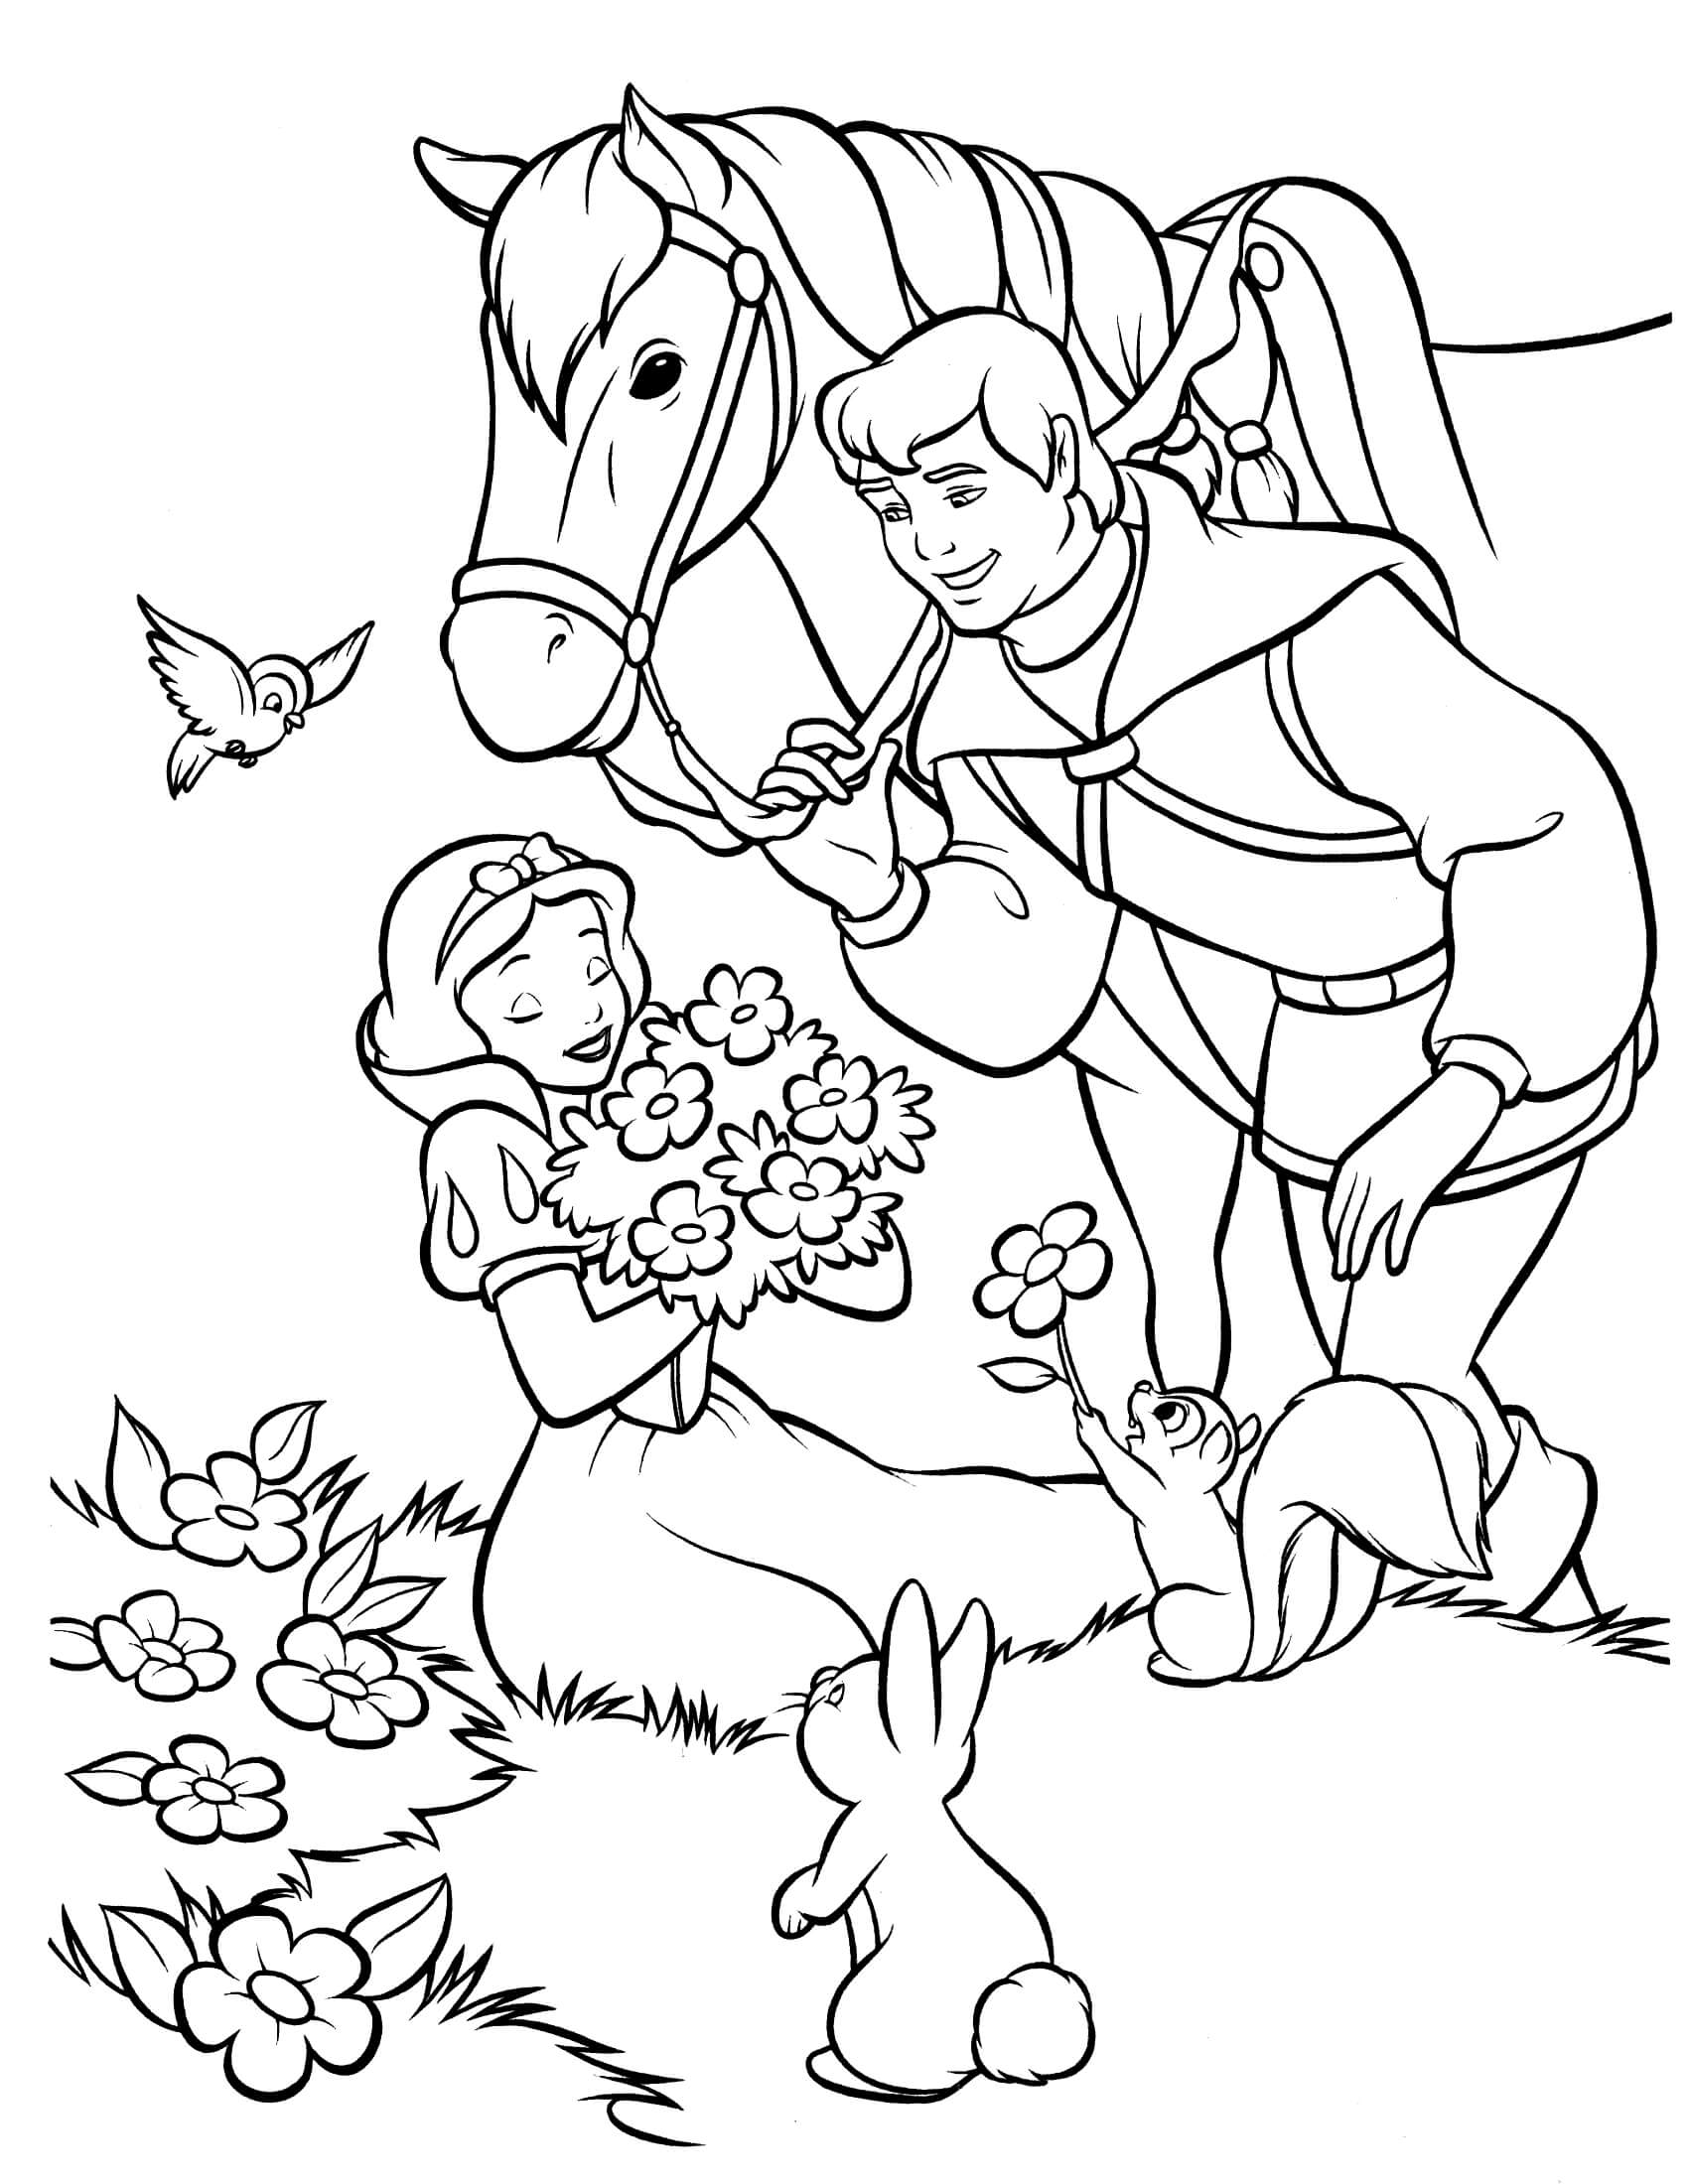 coloring picture of snow white snow white coloring pages best coloring pages for kids snow coloring picture of white